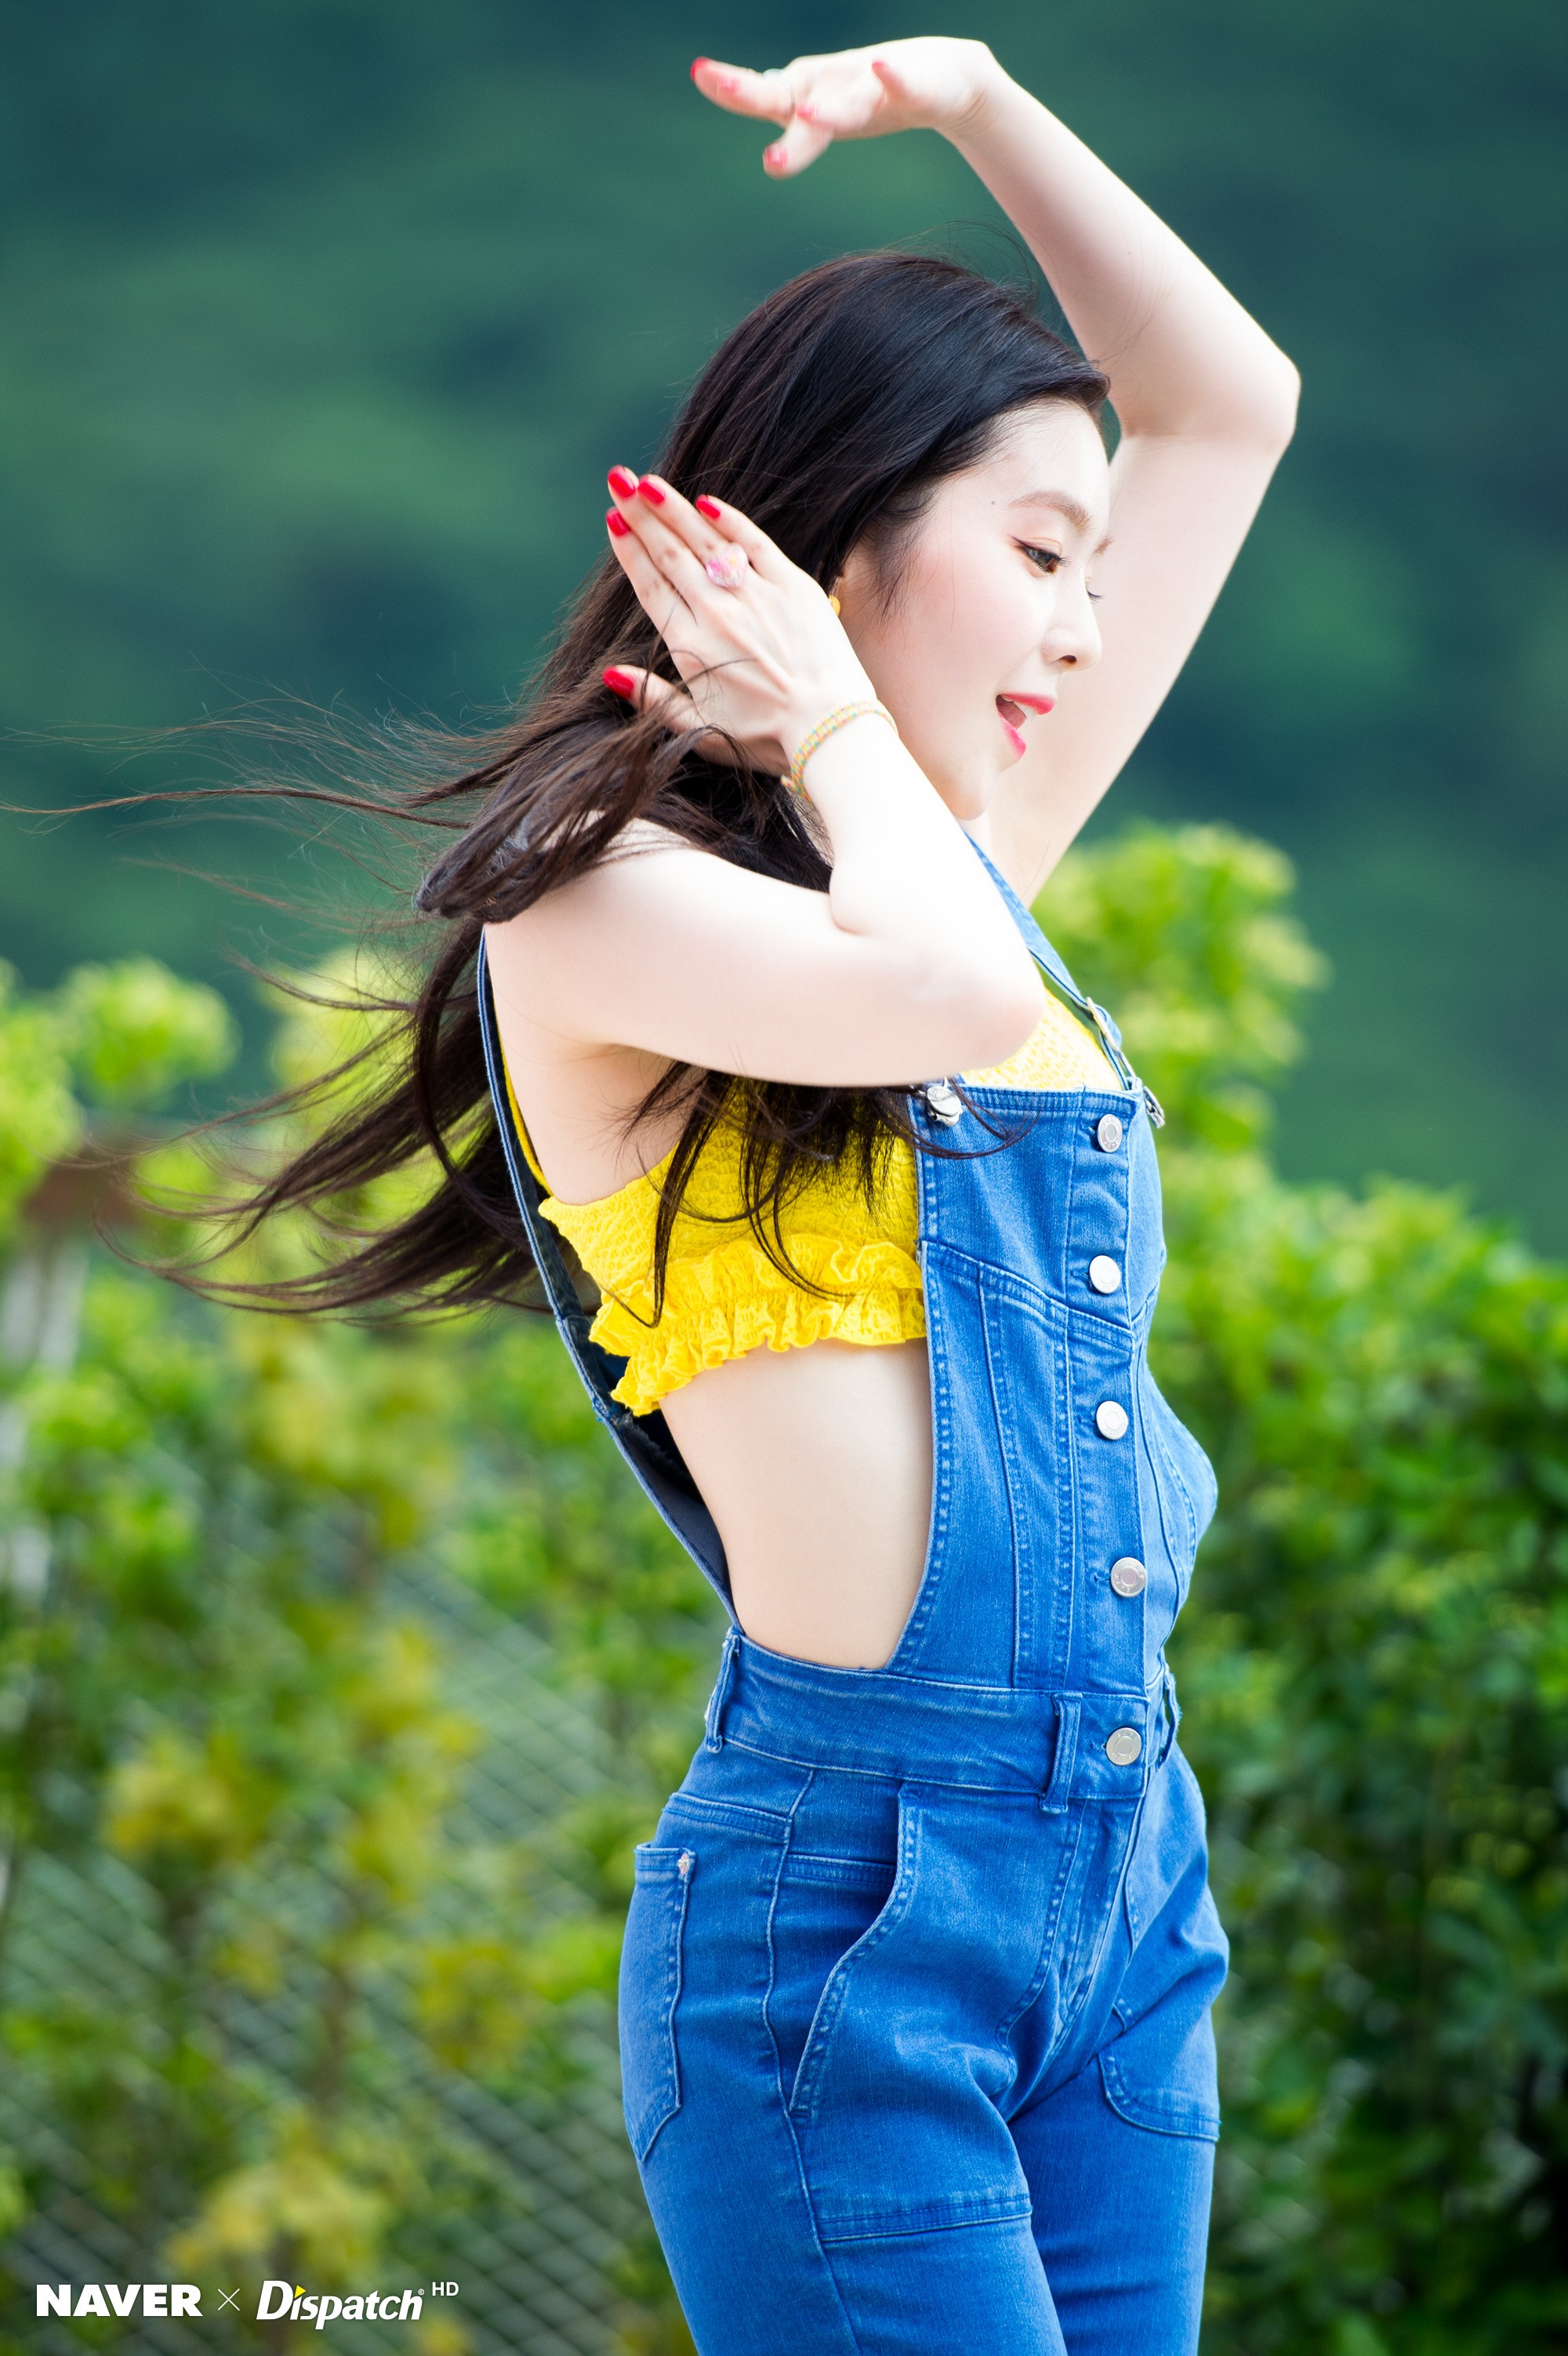 18 Hd Photos From The Red Velvet Pool Party You Wish You Were Invited To Koreaboo